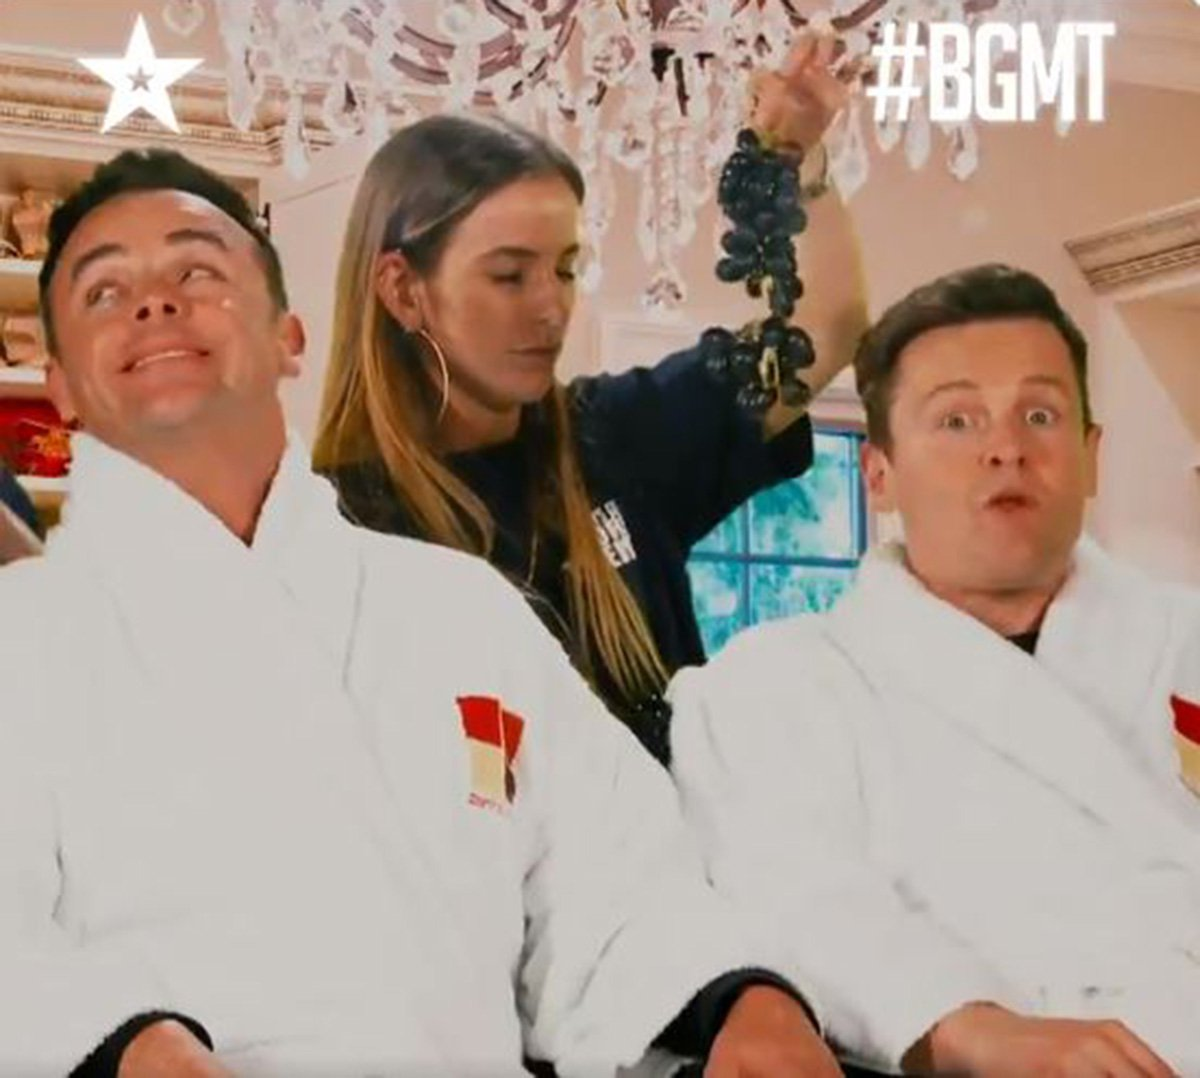 Britain's Got More Talent: 'Unluckuy' Stephen Mulhern joined by Ant and Dec, Sinitta and Simon Cowell